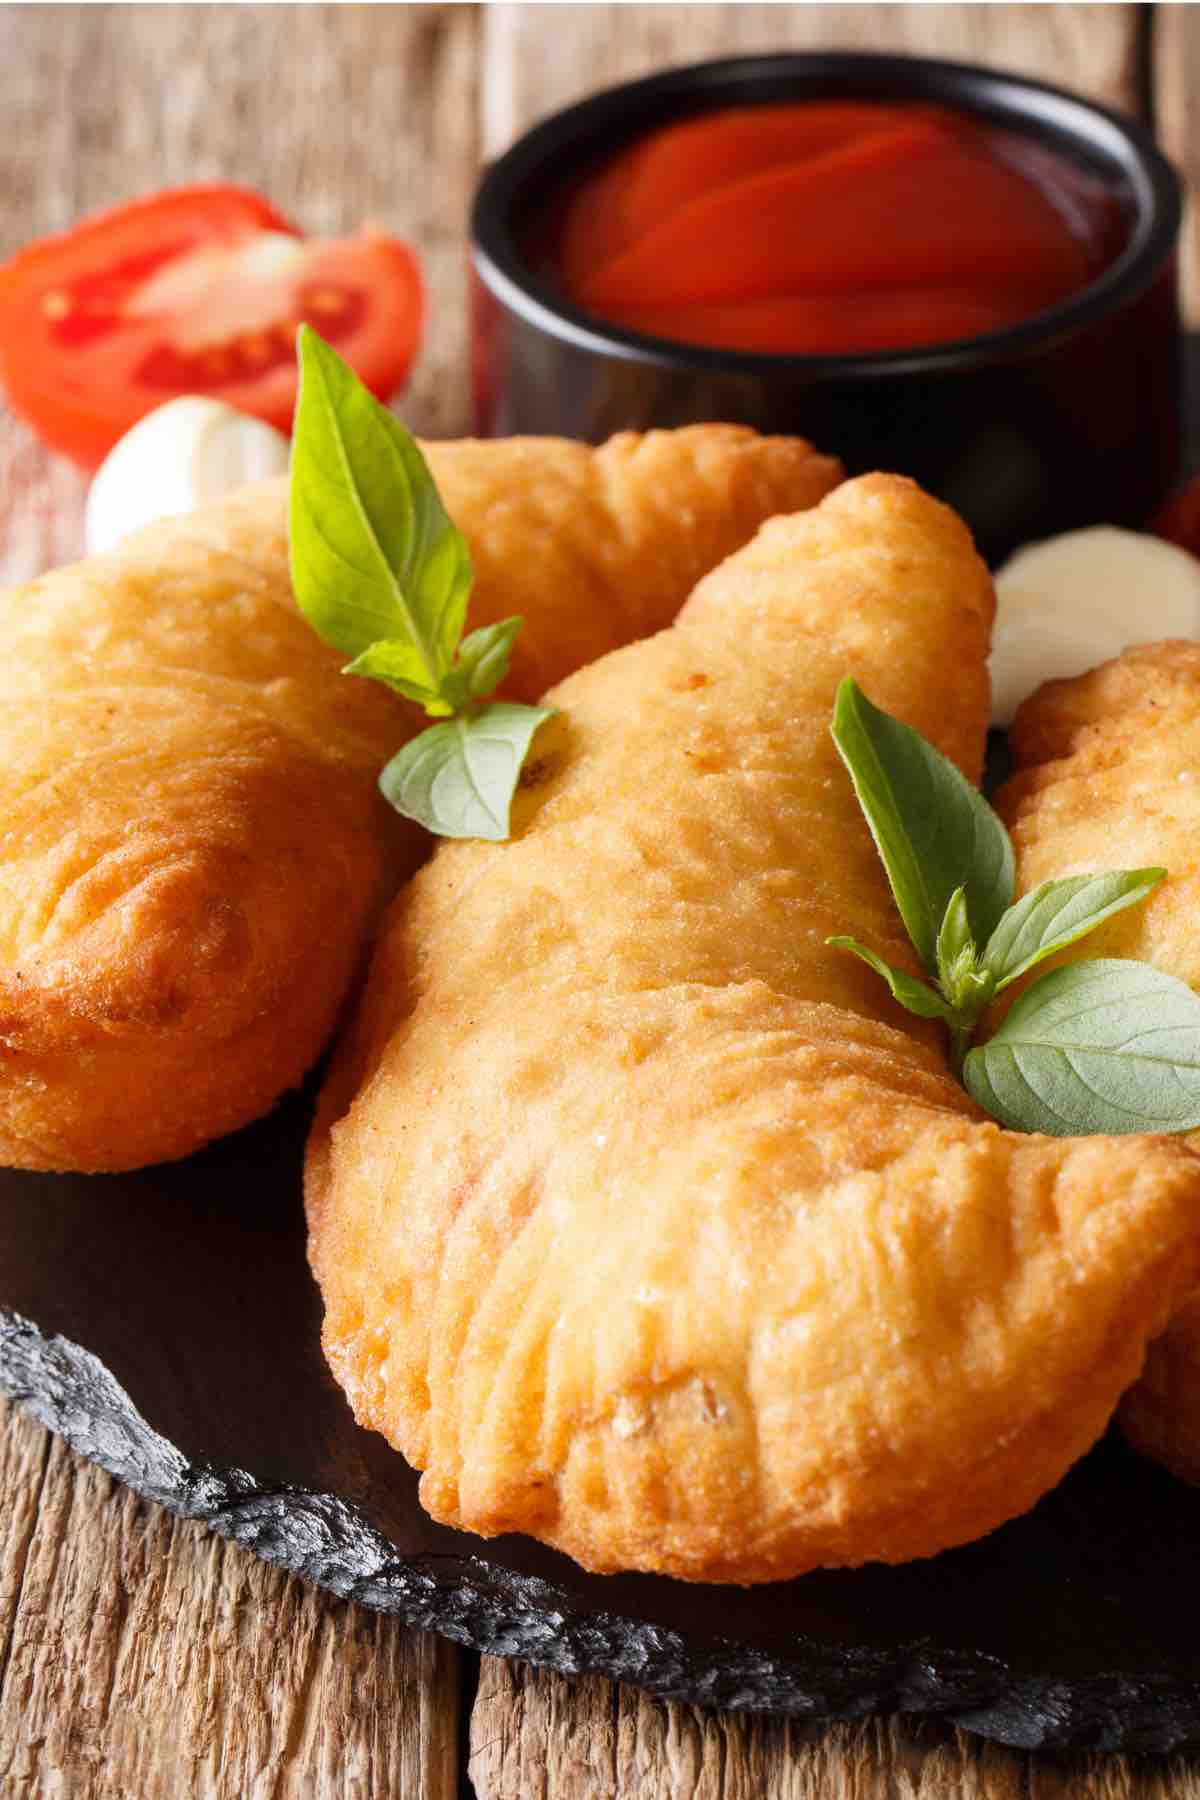 Easy Panzerotti (or Panzarotti) is an Italian savory turnover like a mini pizza pocket and it's super easy to make at home! A pizza dough crust is filled with all the classic toppings – pepperoni, cheese, and your choice of sauce. These semi-circular pockets are then baked or deep-fried to golden perfection. If this sounds like something you might like (how can it not?), check out this authentic recipe.